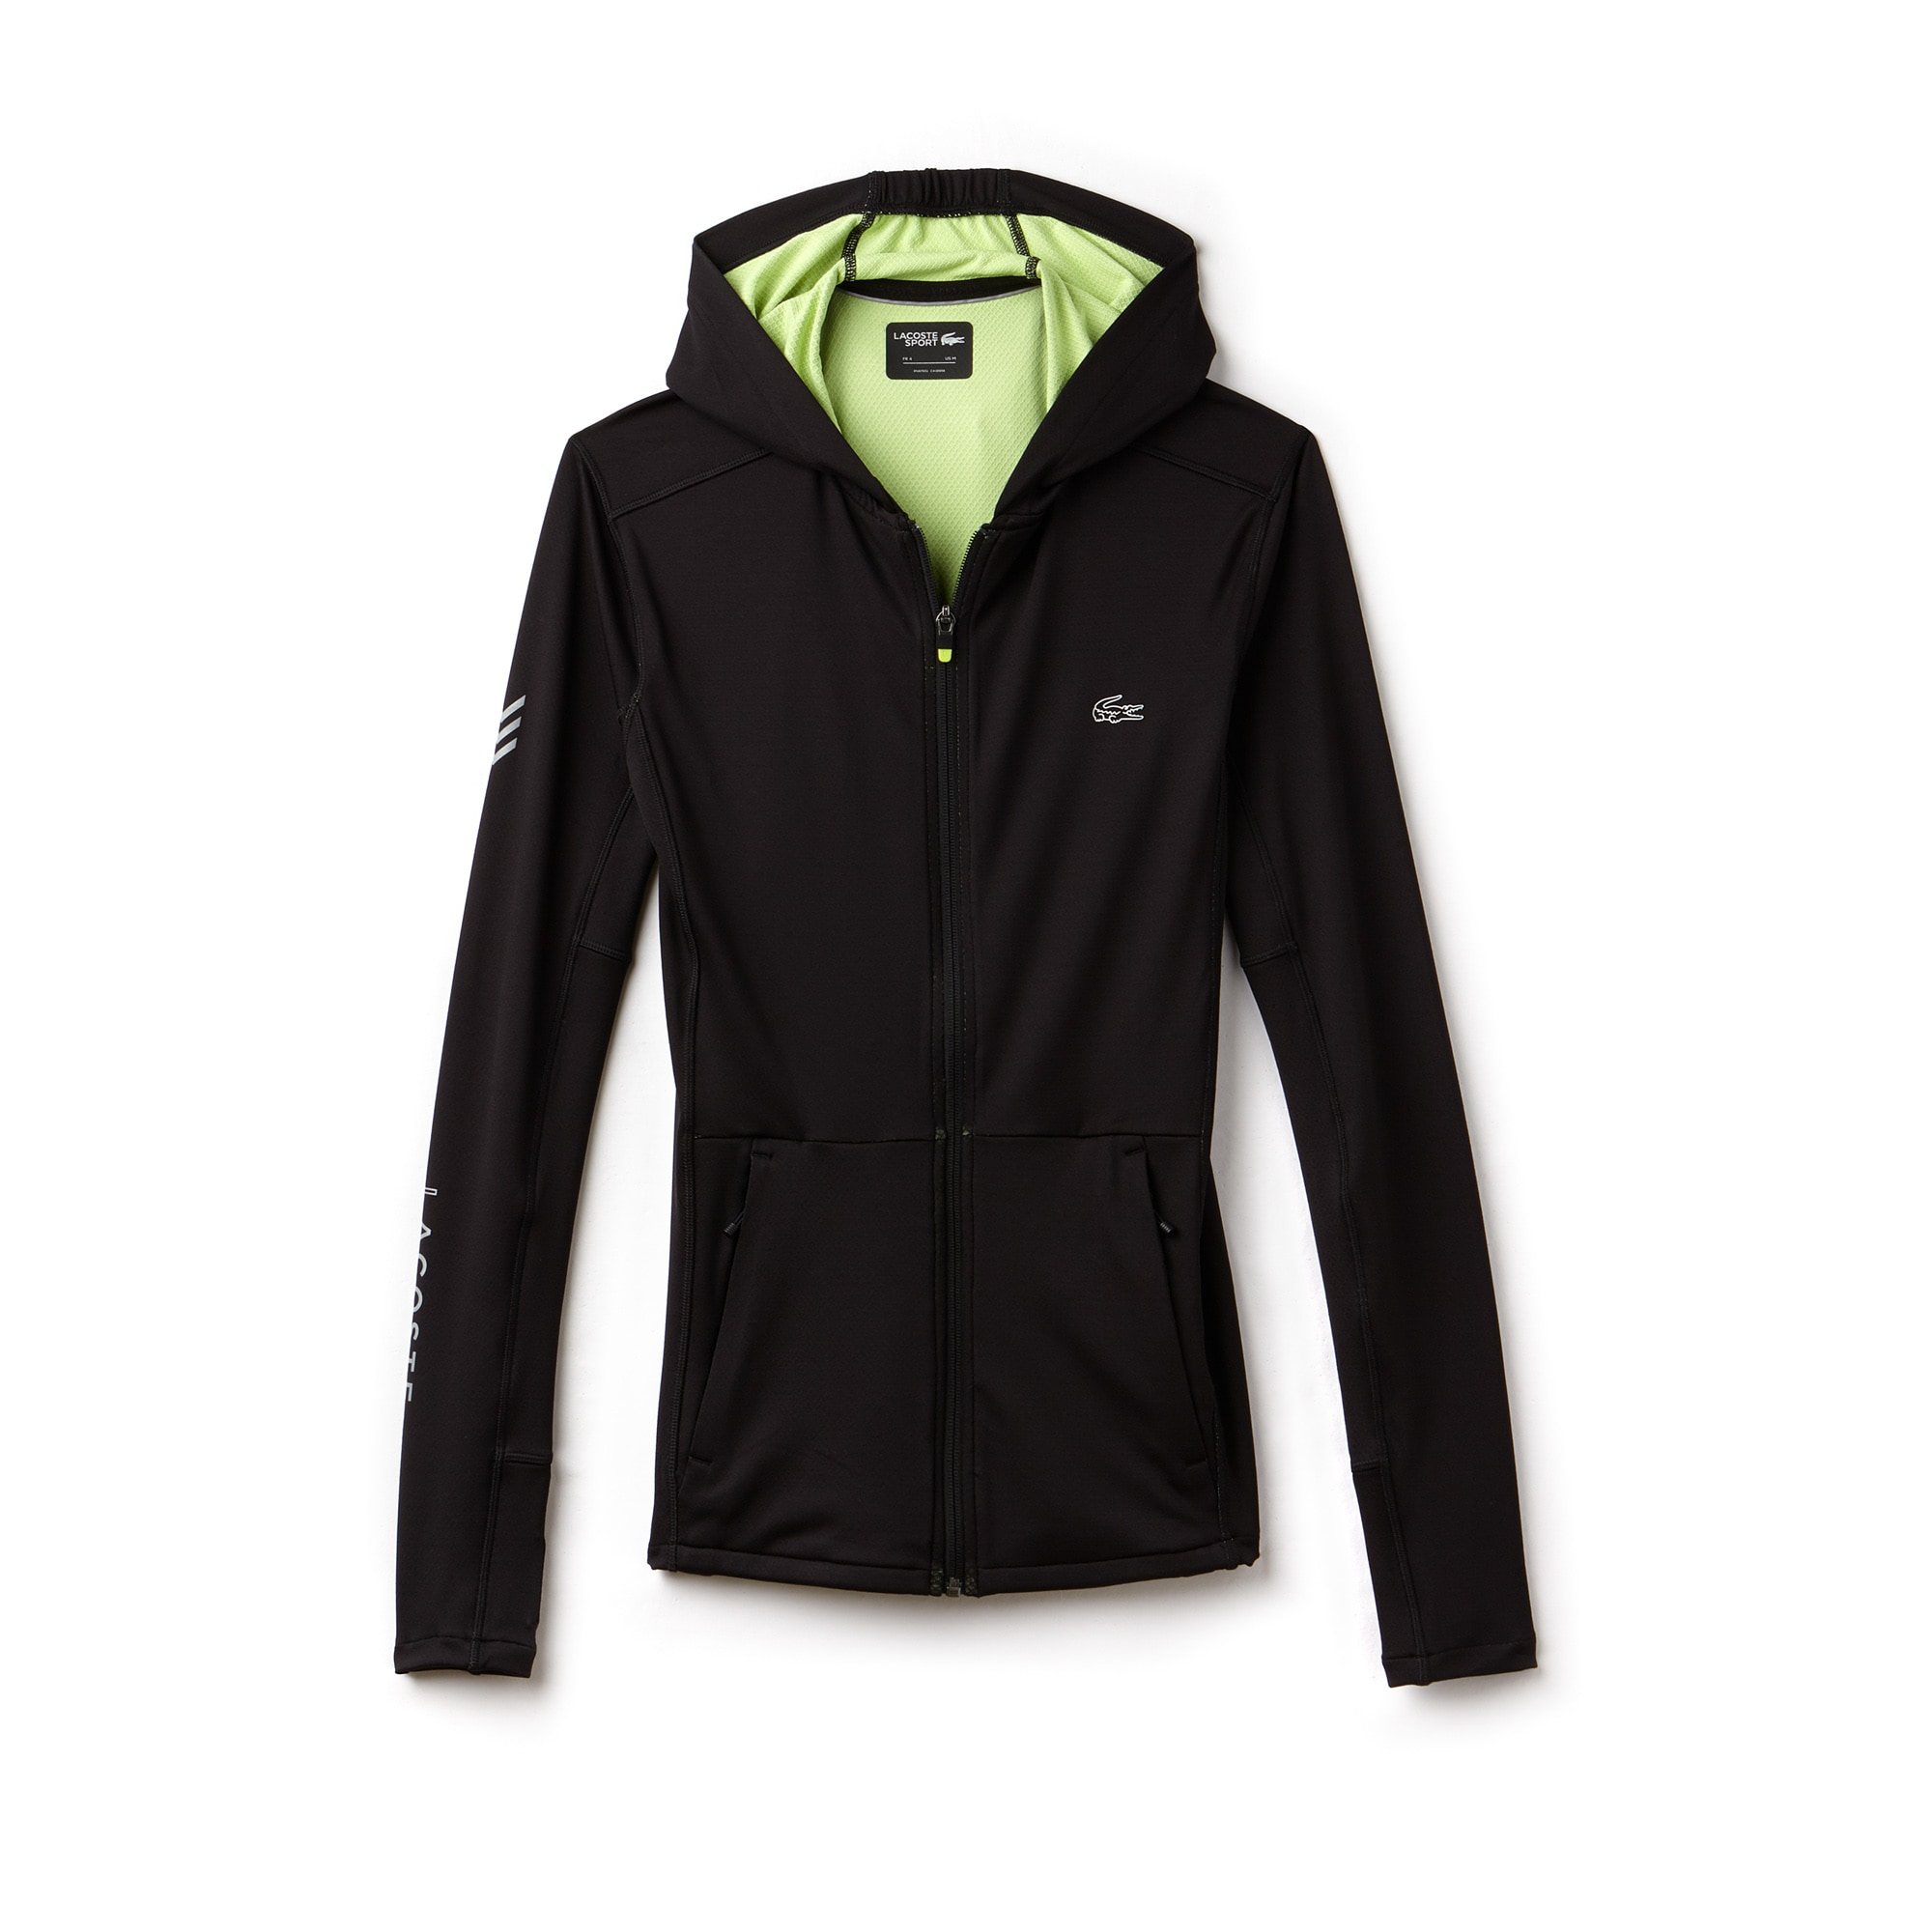 Men's SPORT Midlayer Tennis Sweatshirt